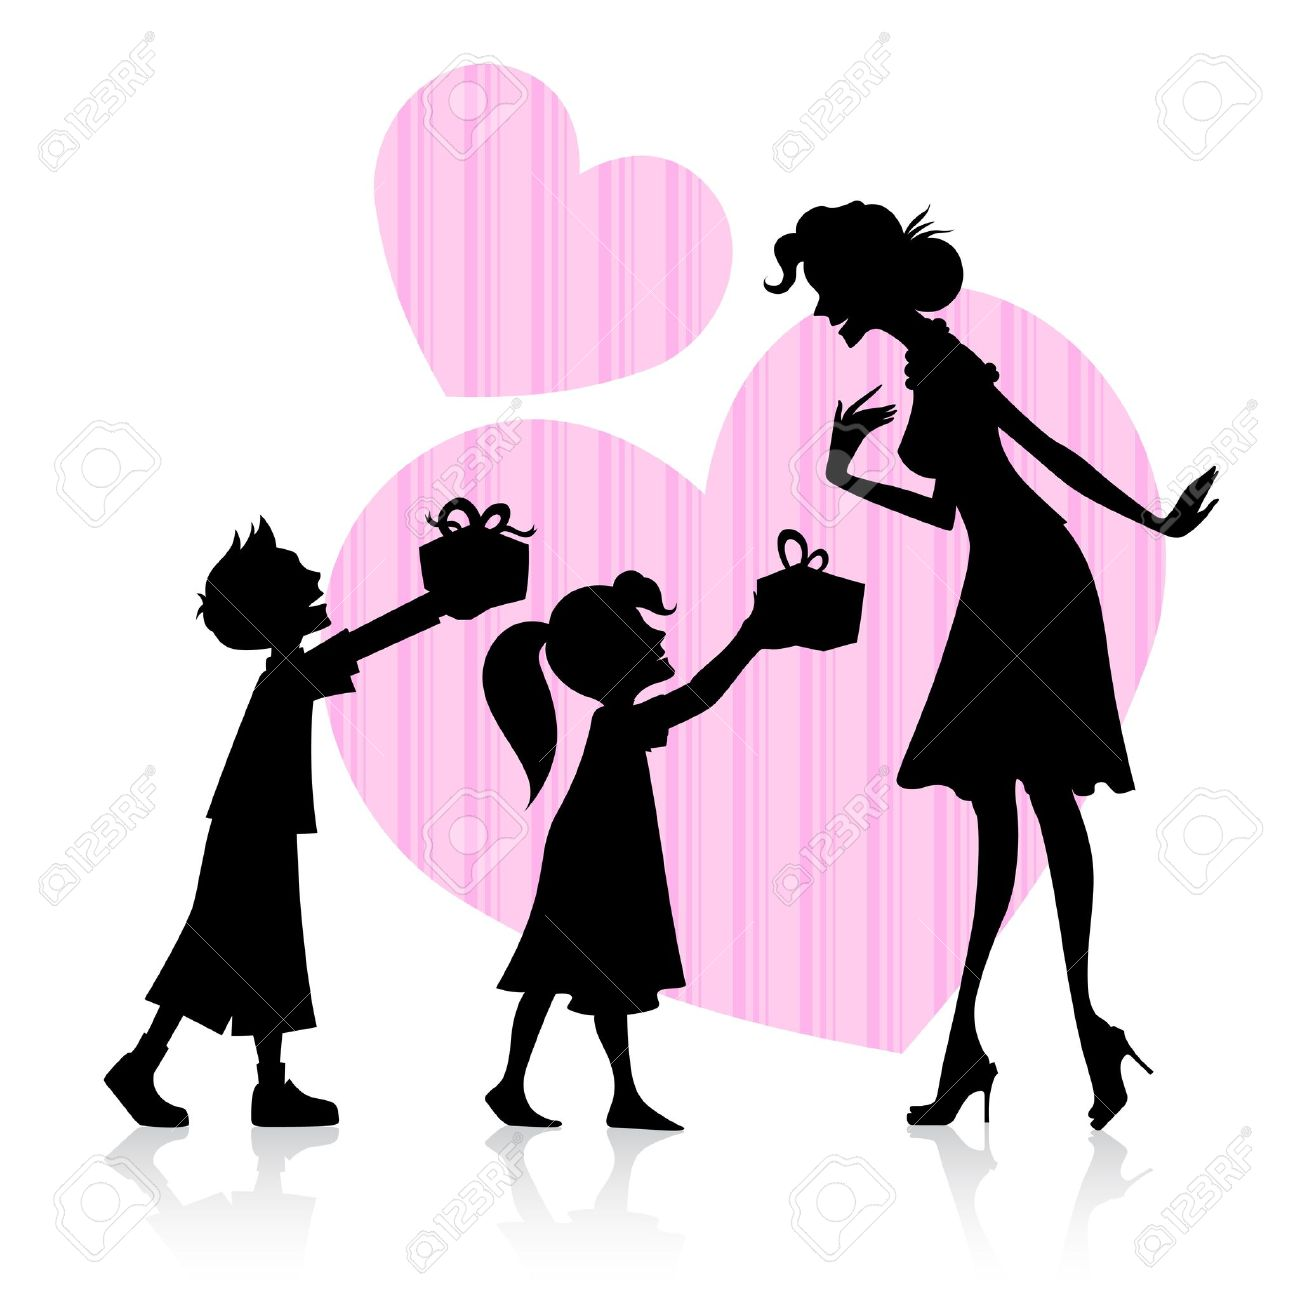 illustration of kids giving gift to mother on Mother s Day Stock Vector - 18960225